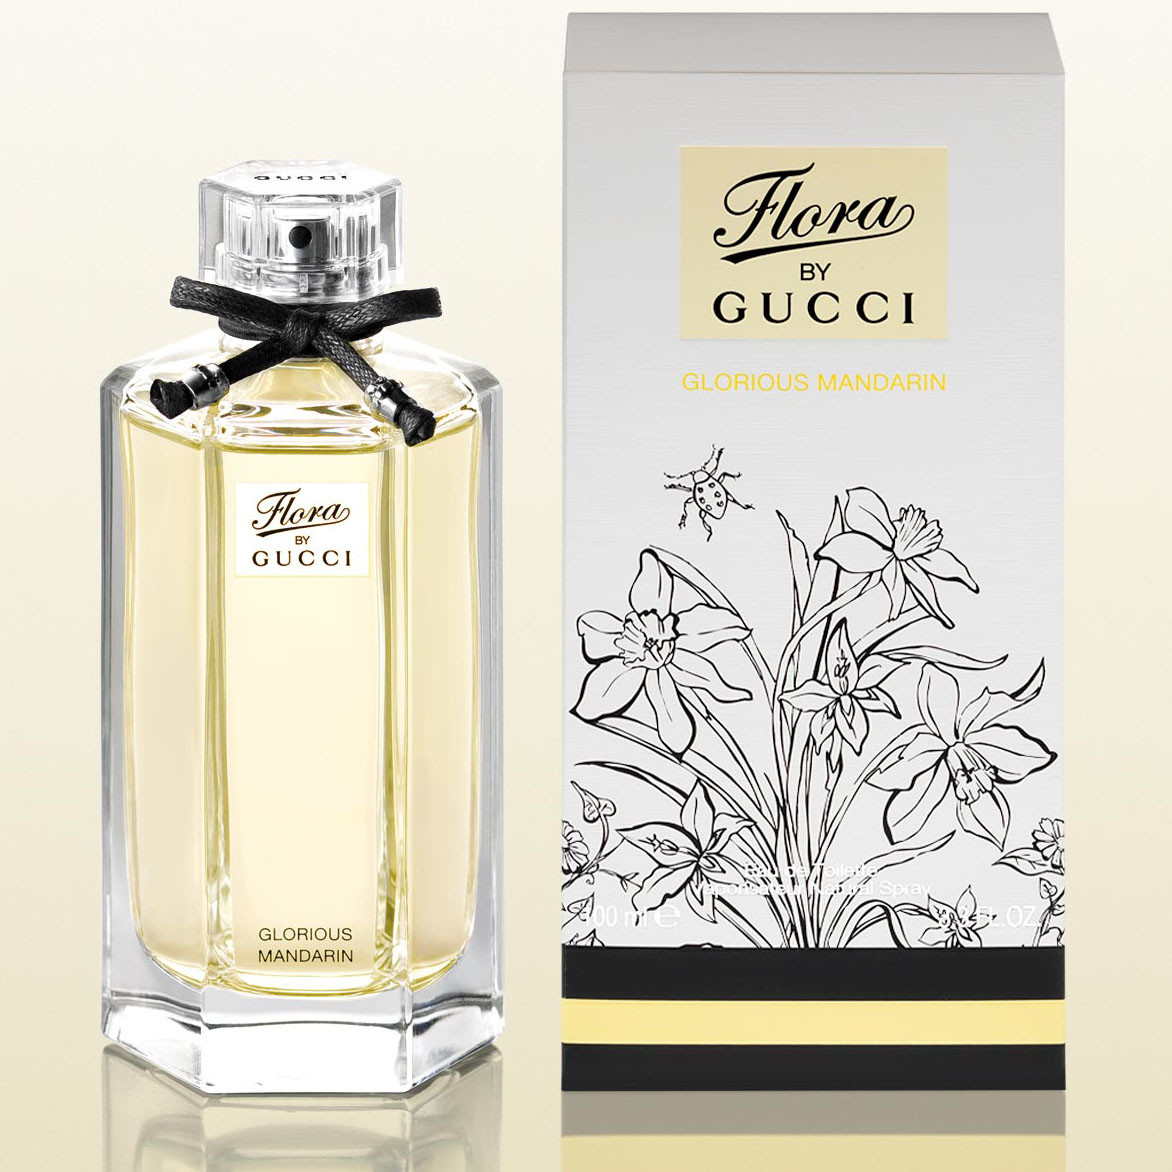 Gucci Flora by Gucci Glorious Mandarin туалетная вода 100 ml. (Гуччи Флора Бай  Гуччи d9adaf56520b4